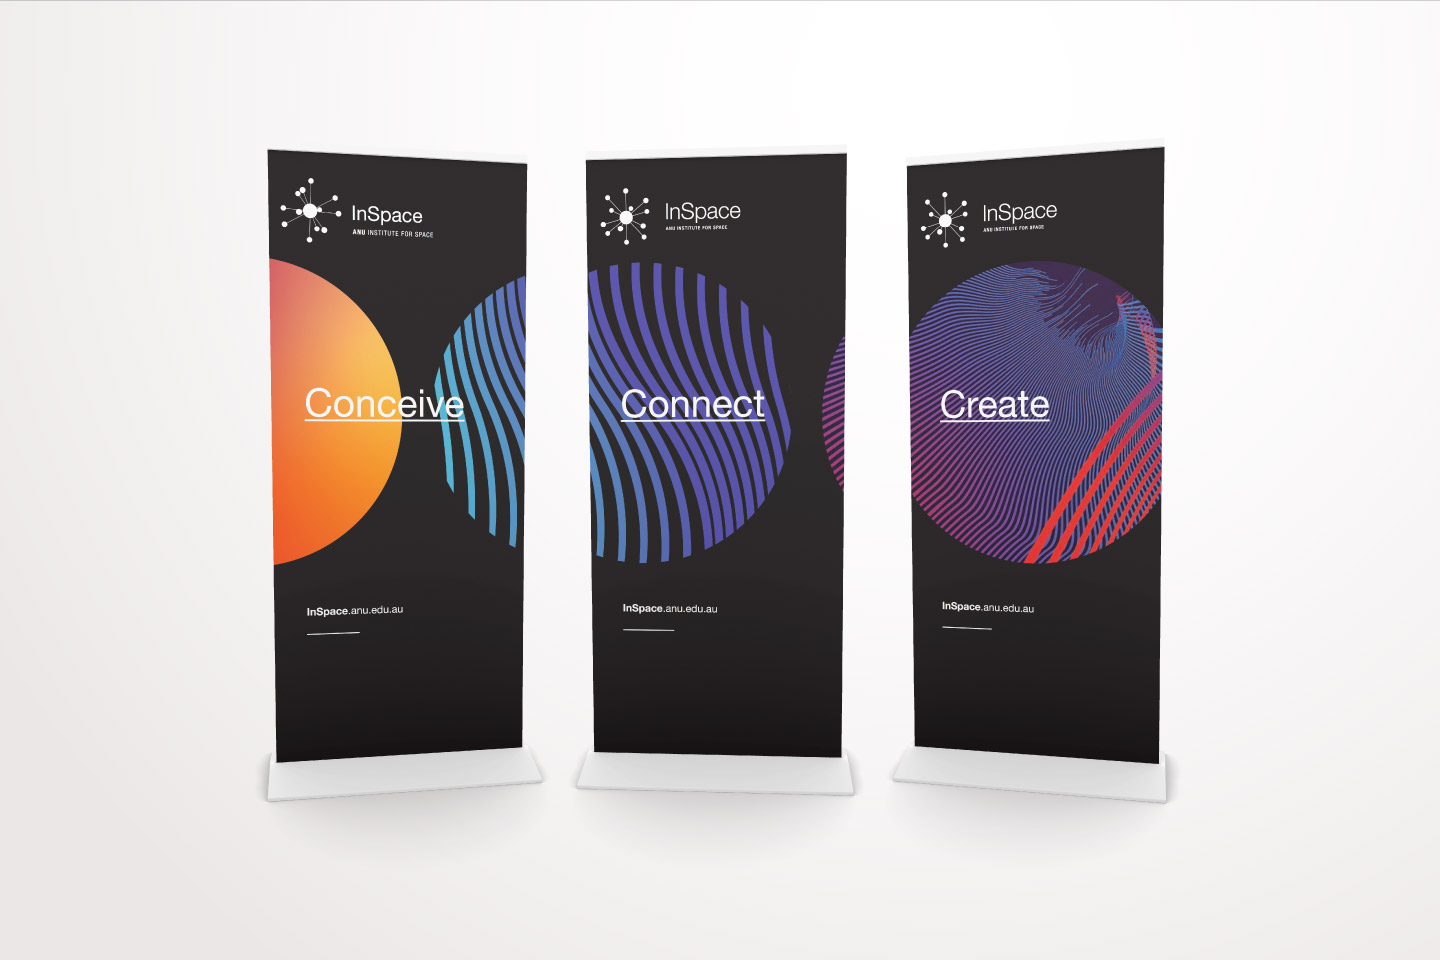 Pul-up banners